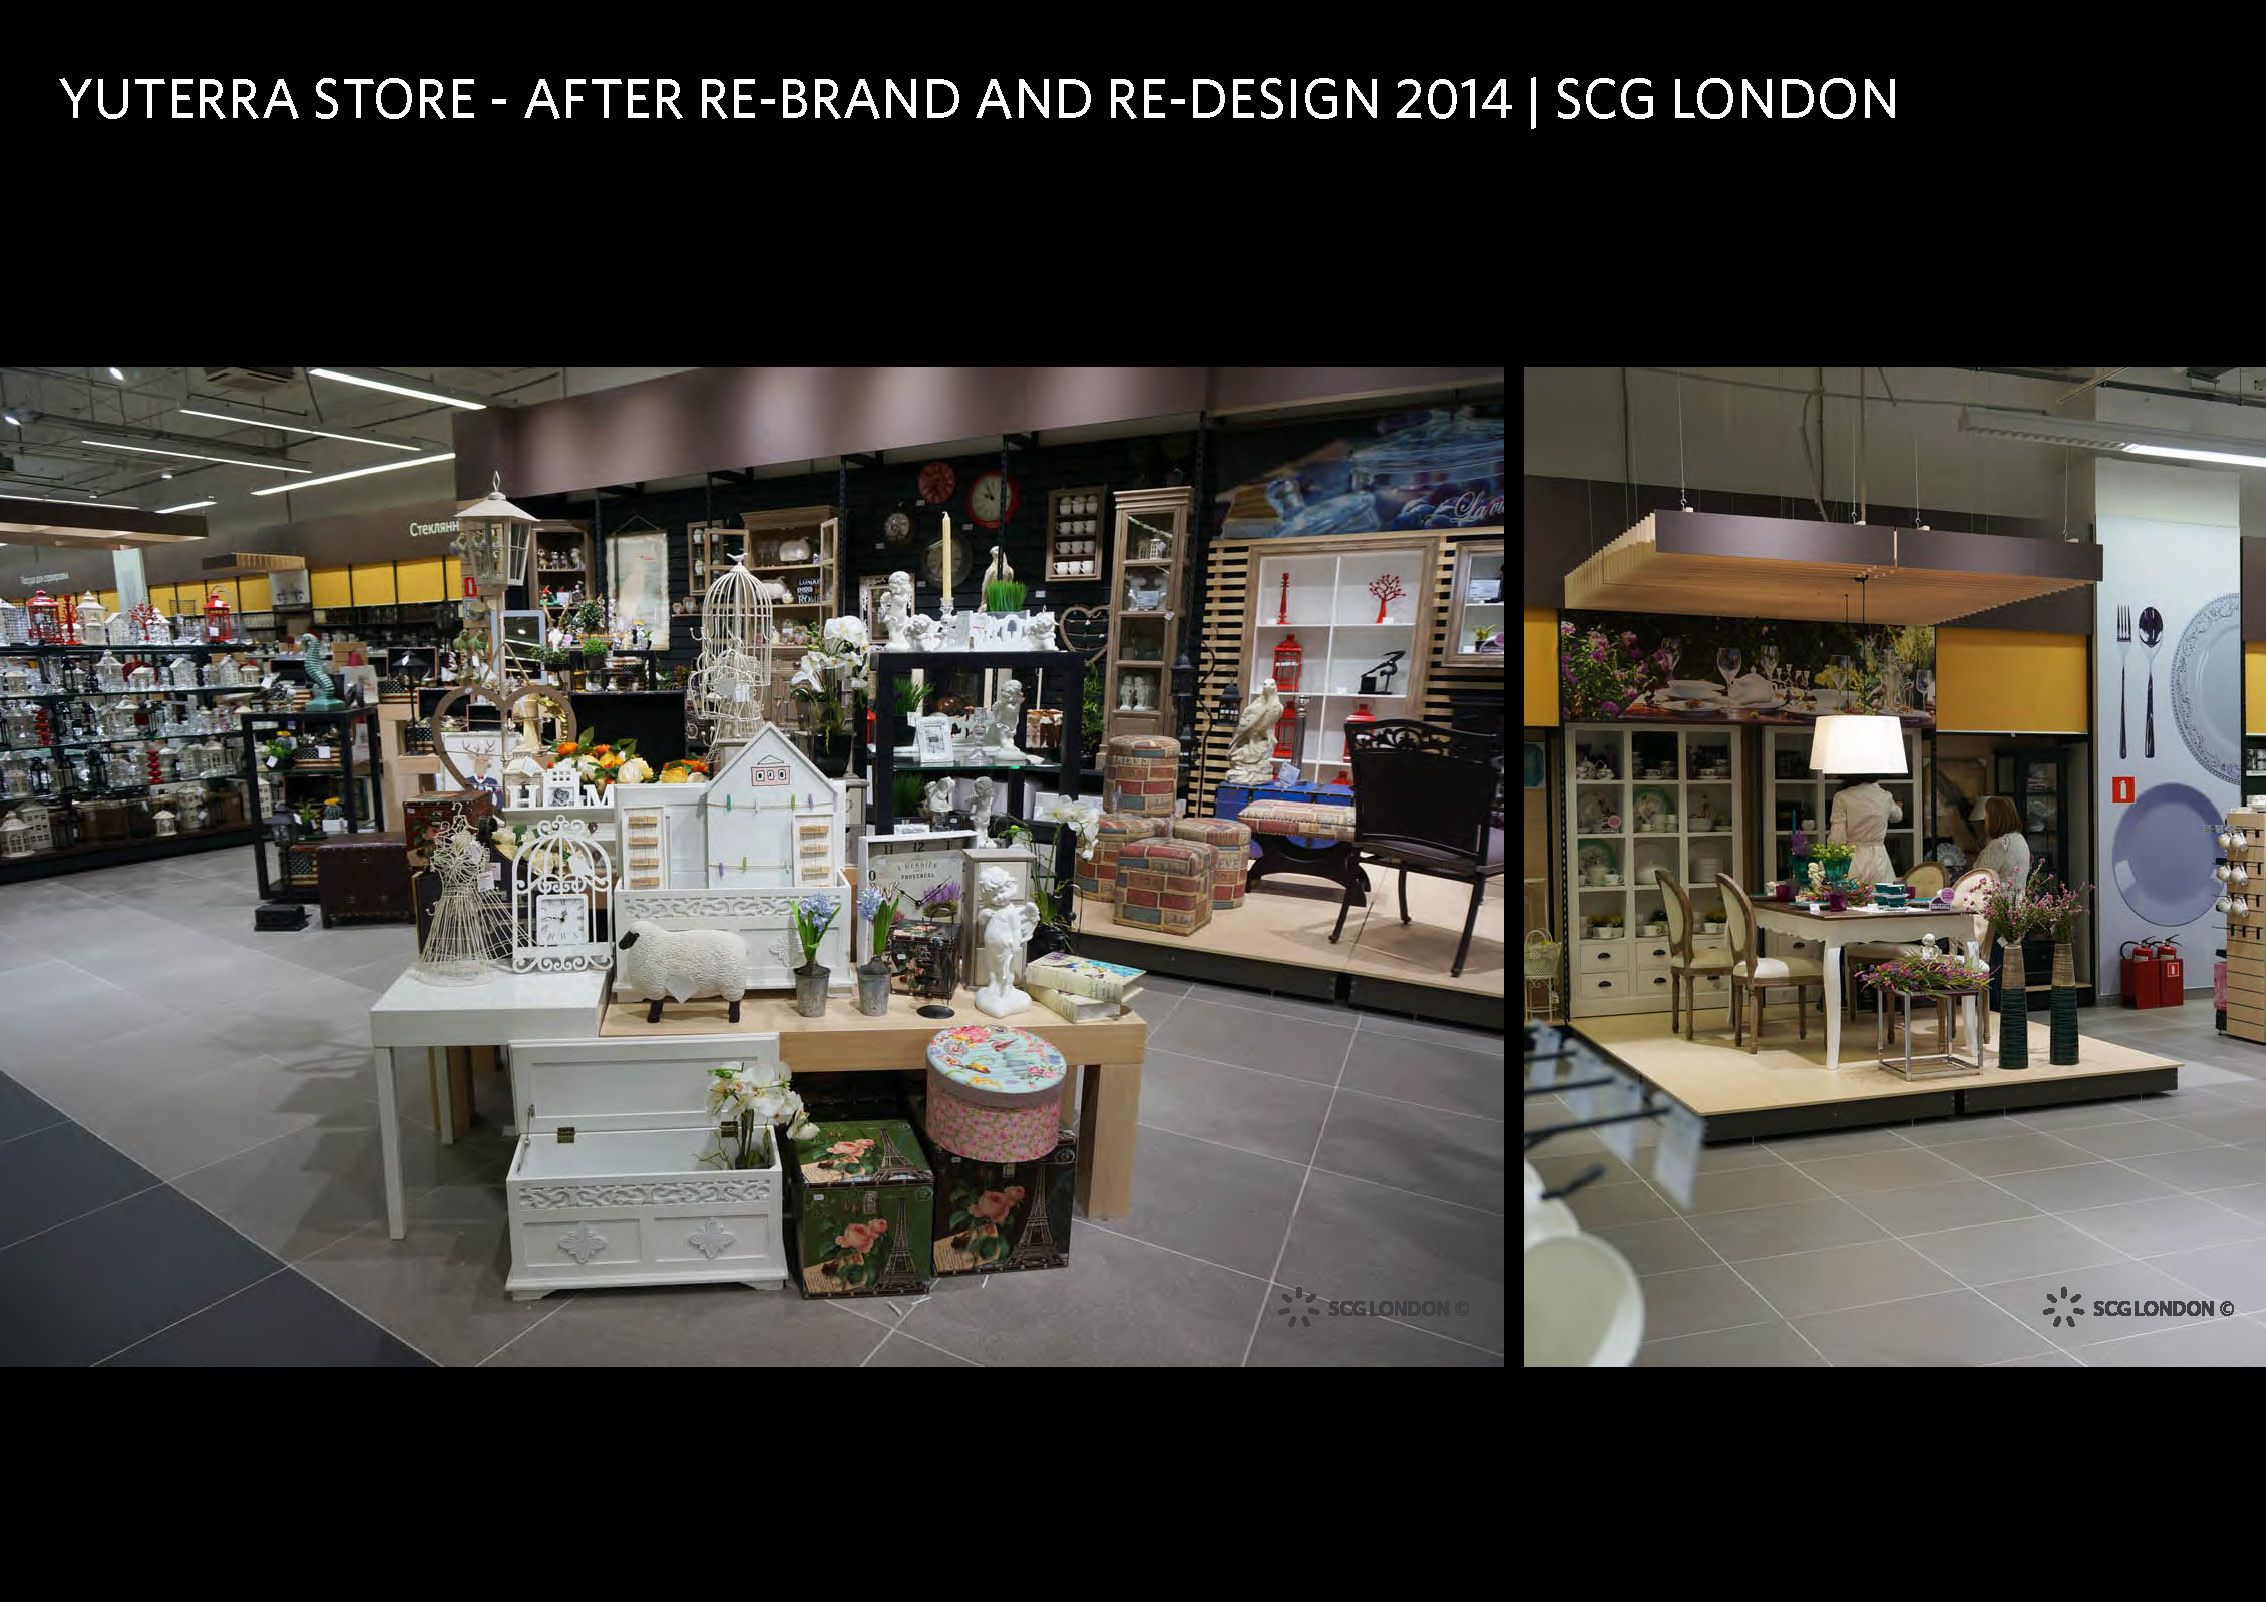 Store after rebrand and redesign by scg london yuterra the diy explore russia diy and more store after rebrand and redesign by scg london solutioingenieria Images